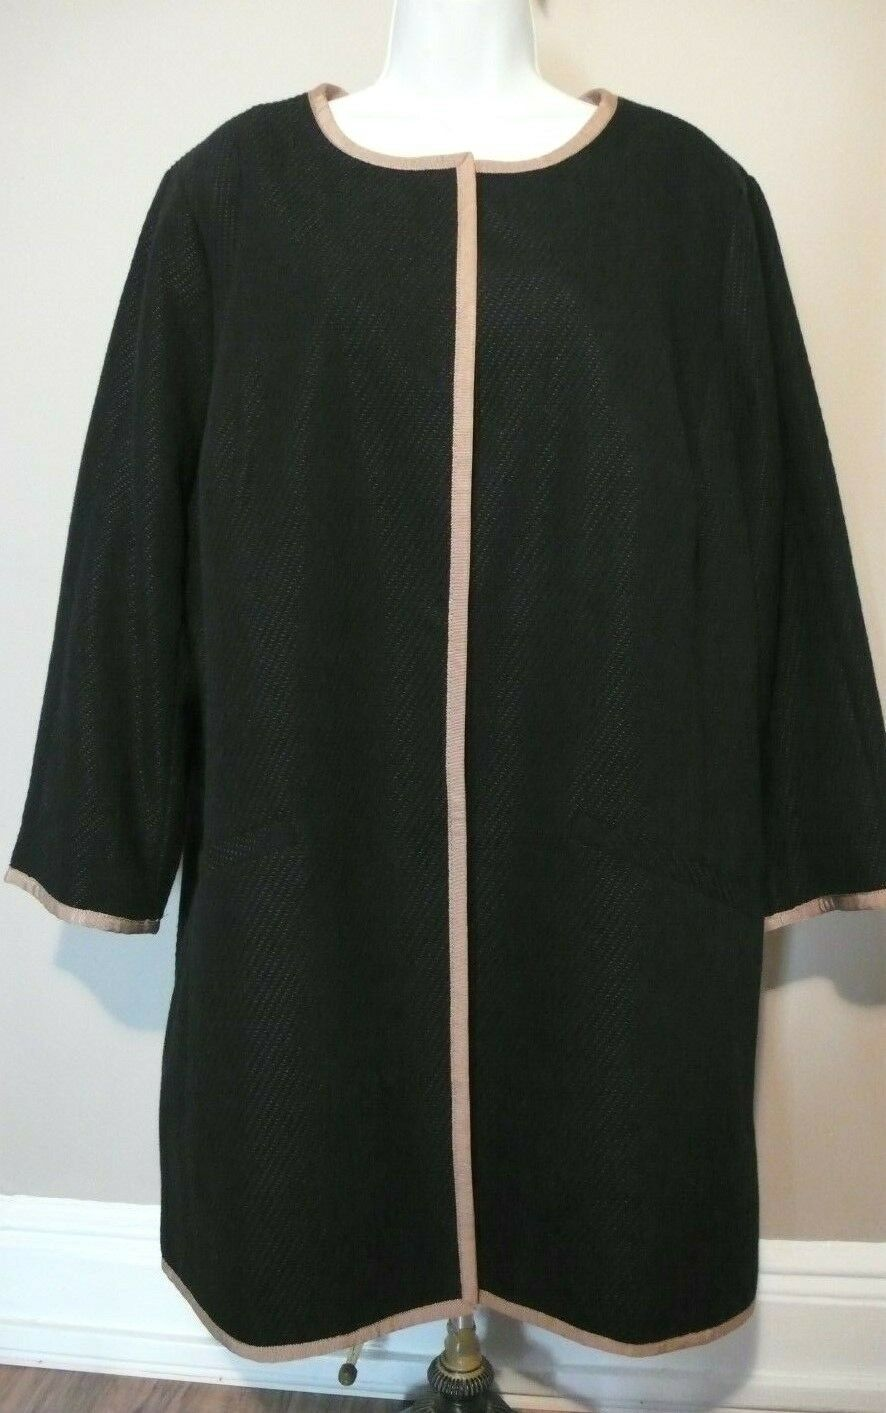 TALBOTS NWT  Textured Cotton Blend Lined Coat  Trench Coat Sz 18W